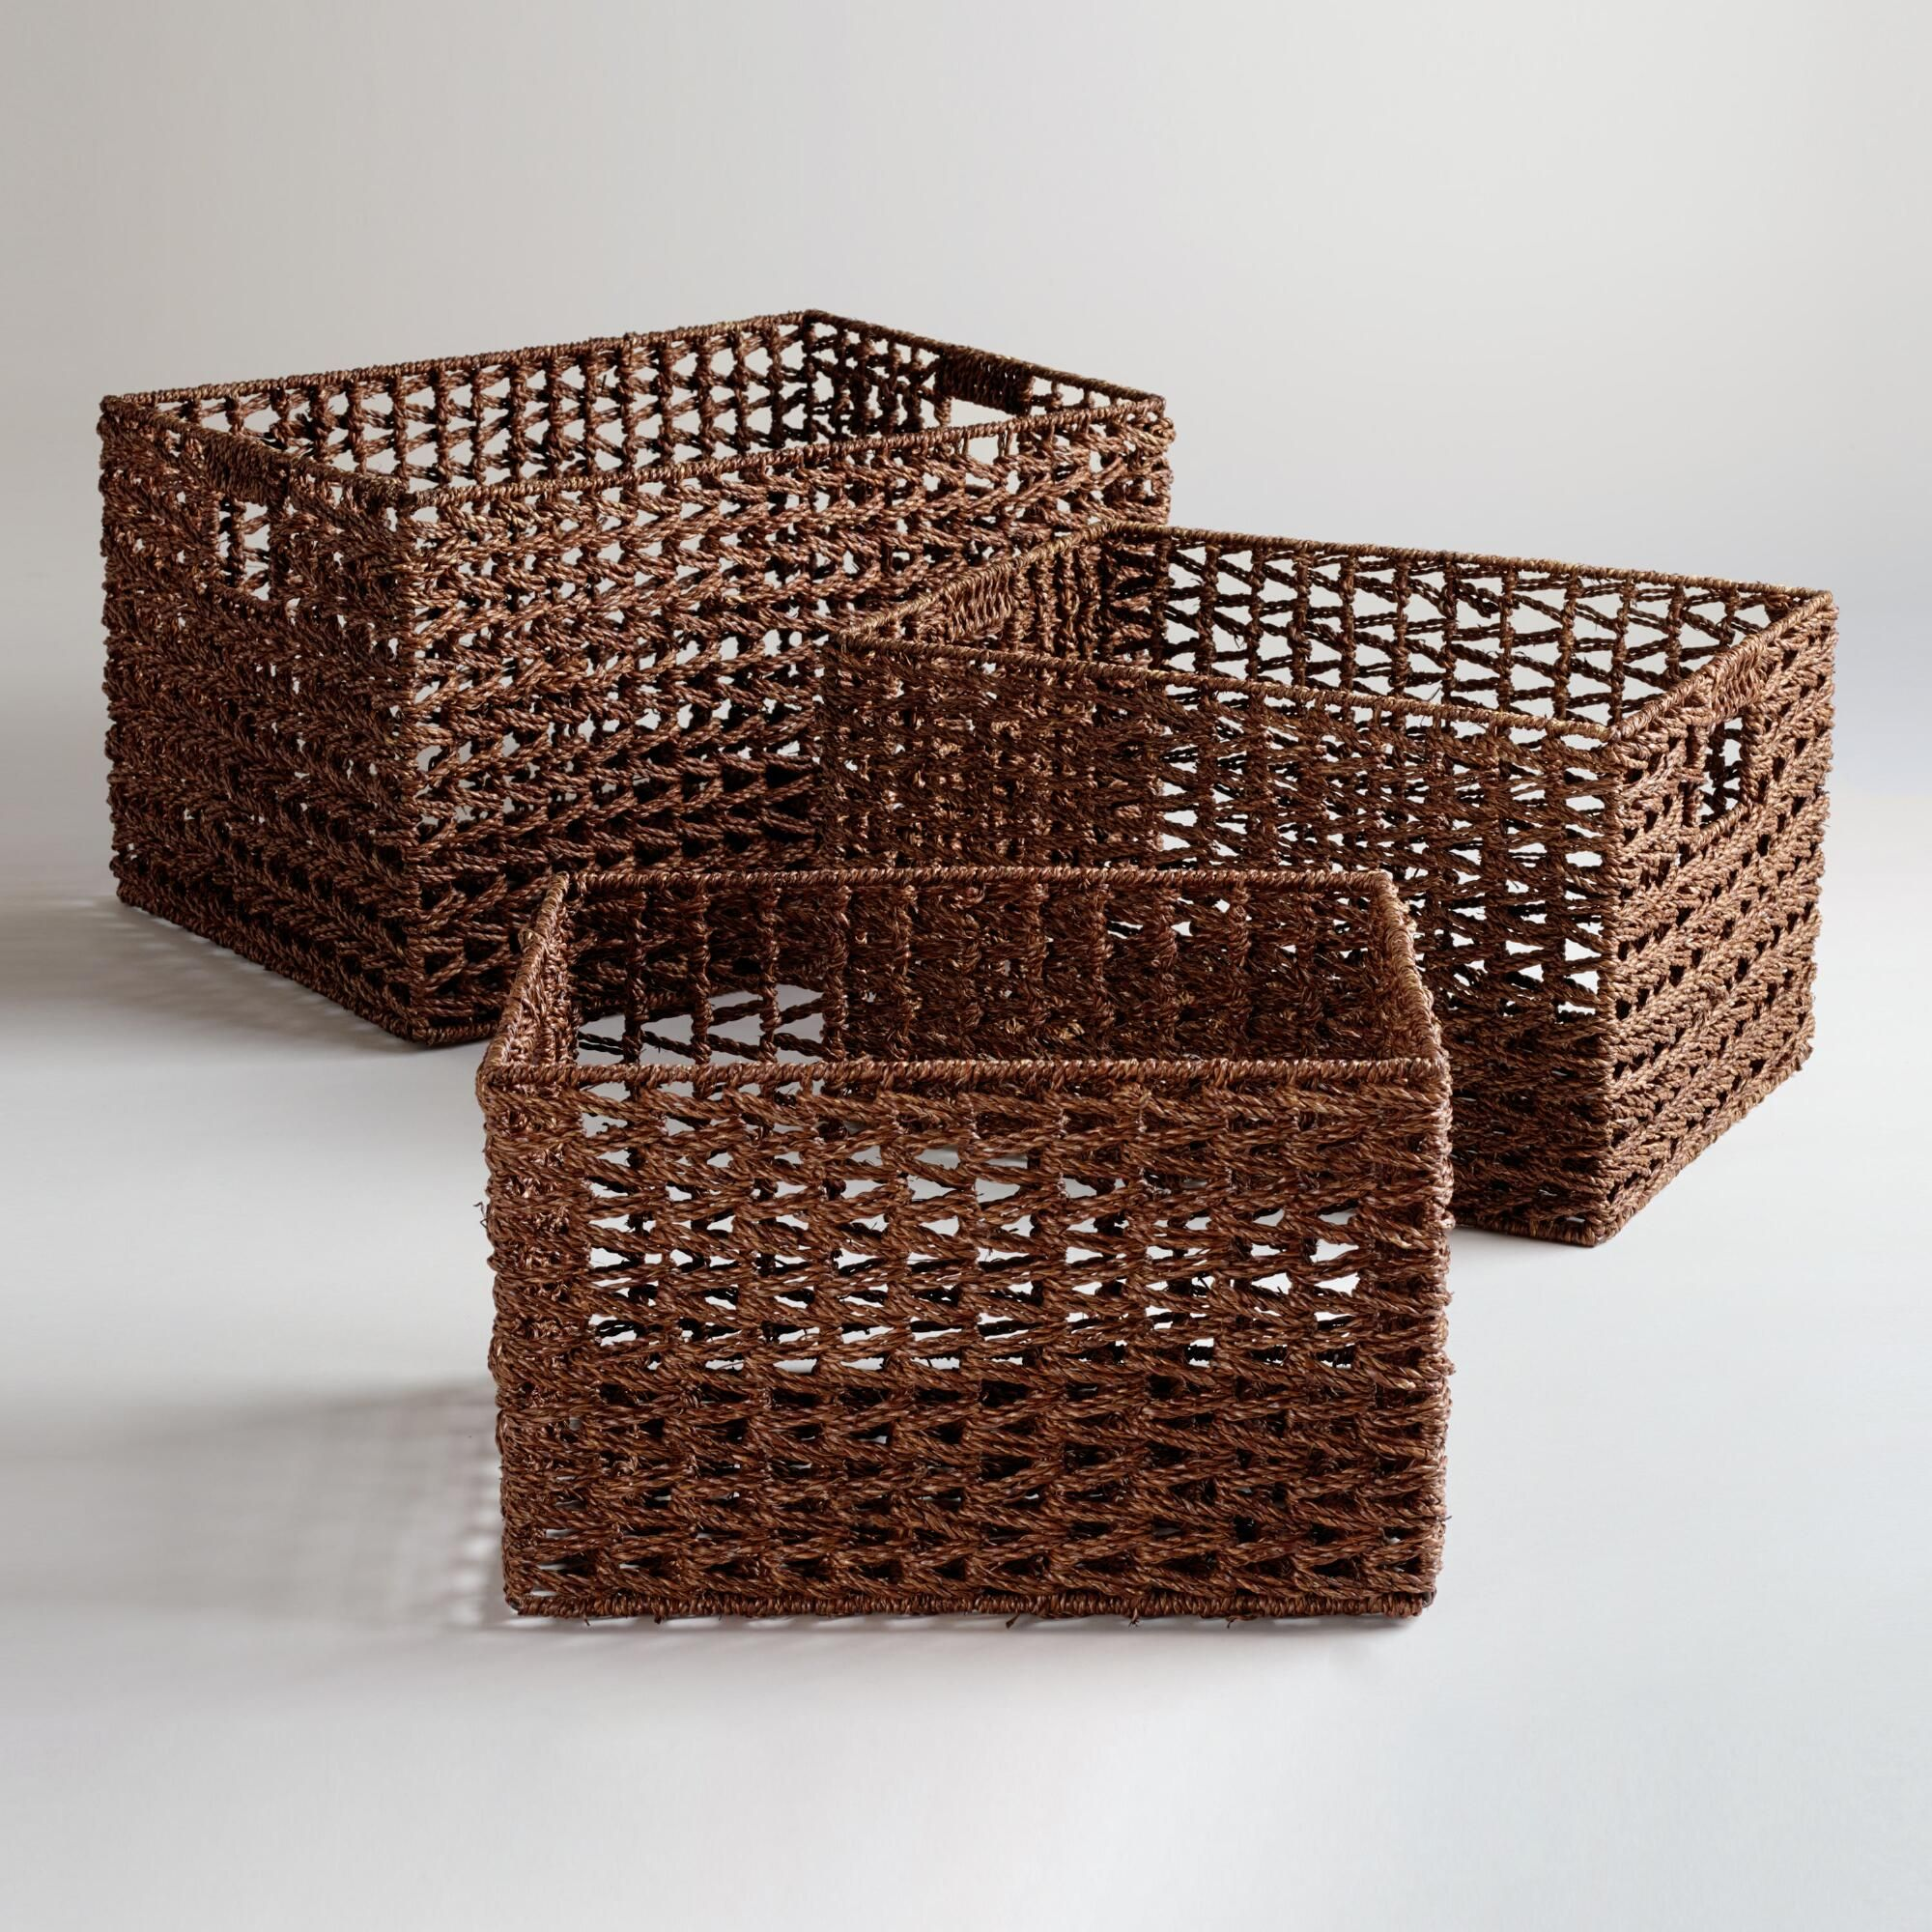 Filling An Empty Niche Is Easy With Our Seagr Storage Baskets The Open